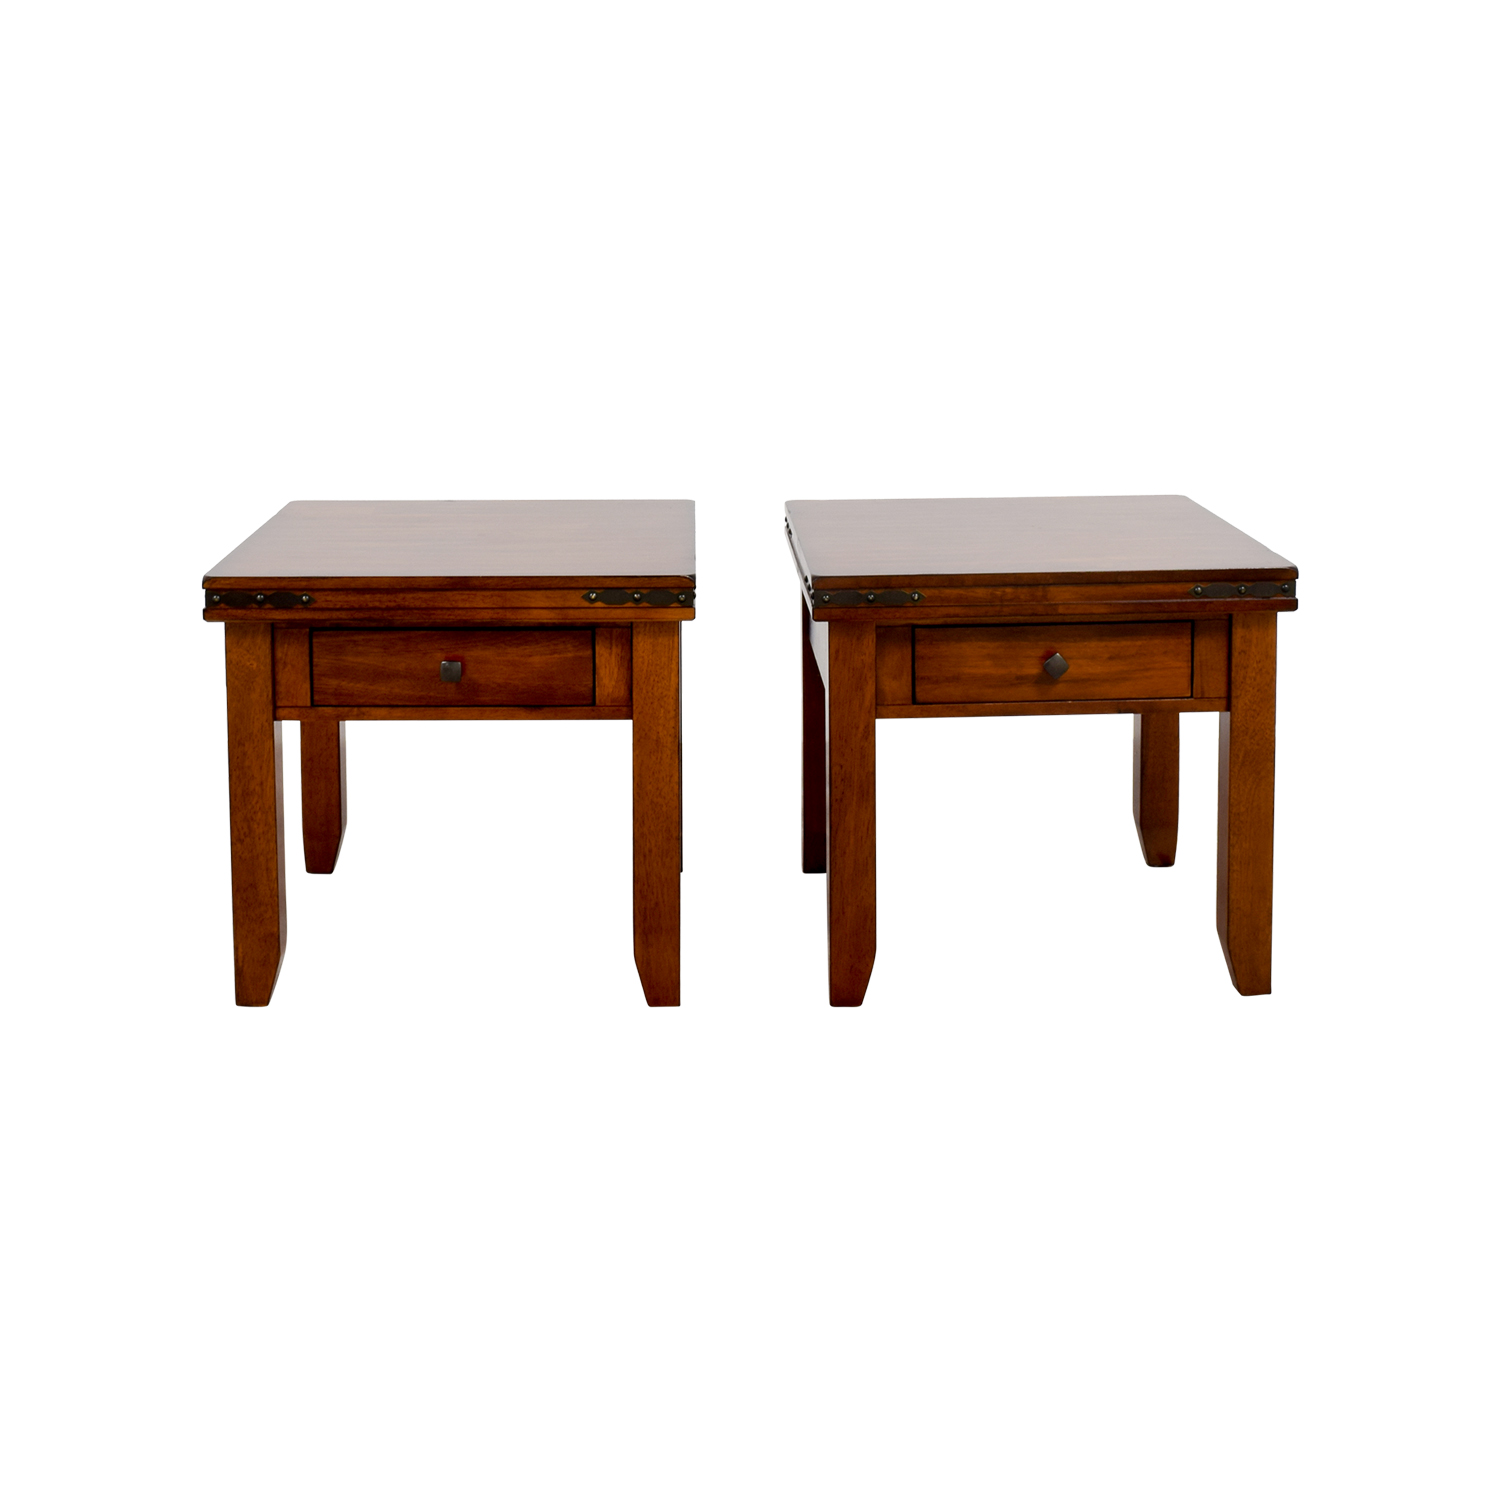 buy Bobs Furniture Enormous End Tables Bobs Furniture End Tables